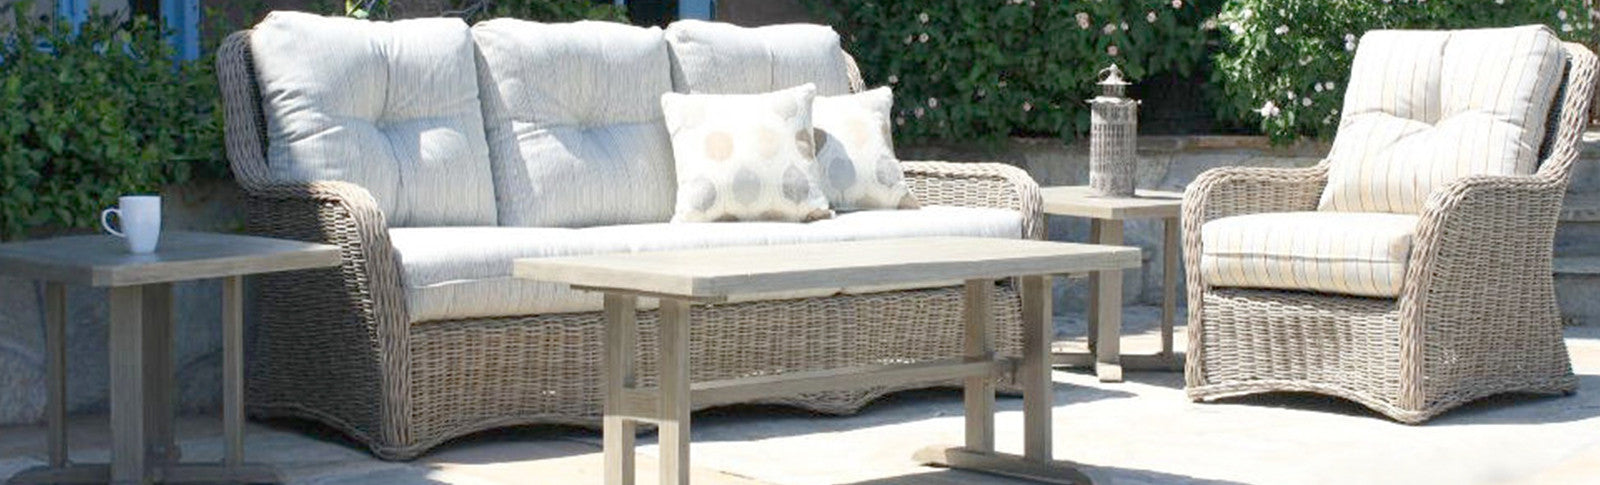 porcelain large slate rnd luxe fire home table high collections tile azul santorini furniture quality outdoor round company patio sale winnipeg